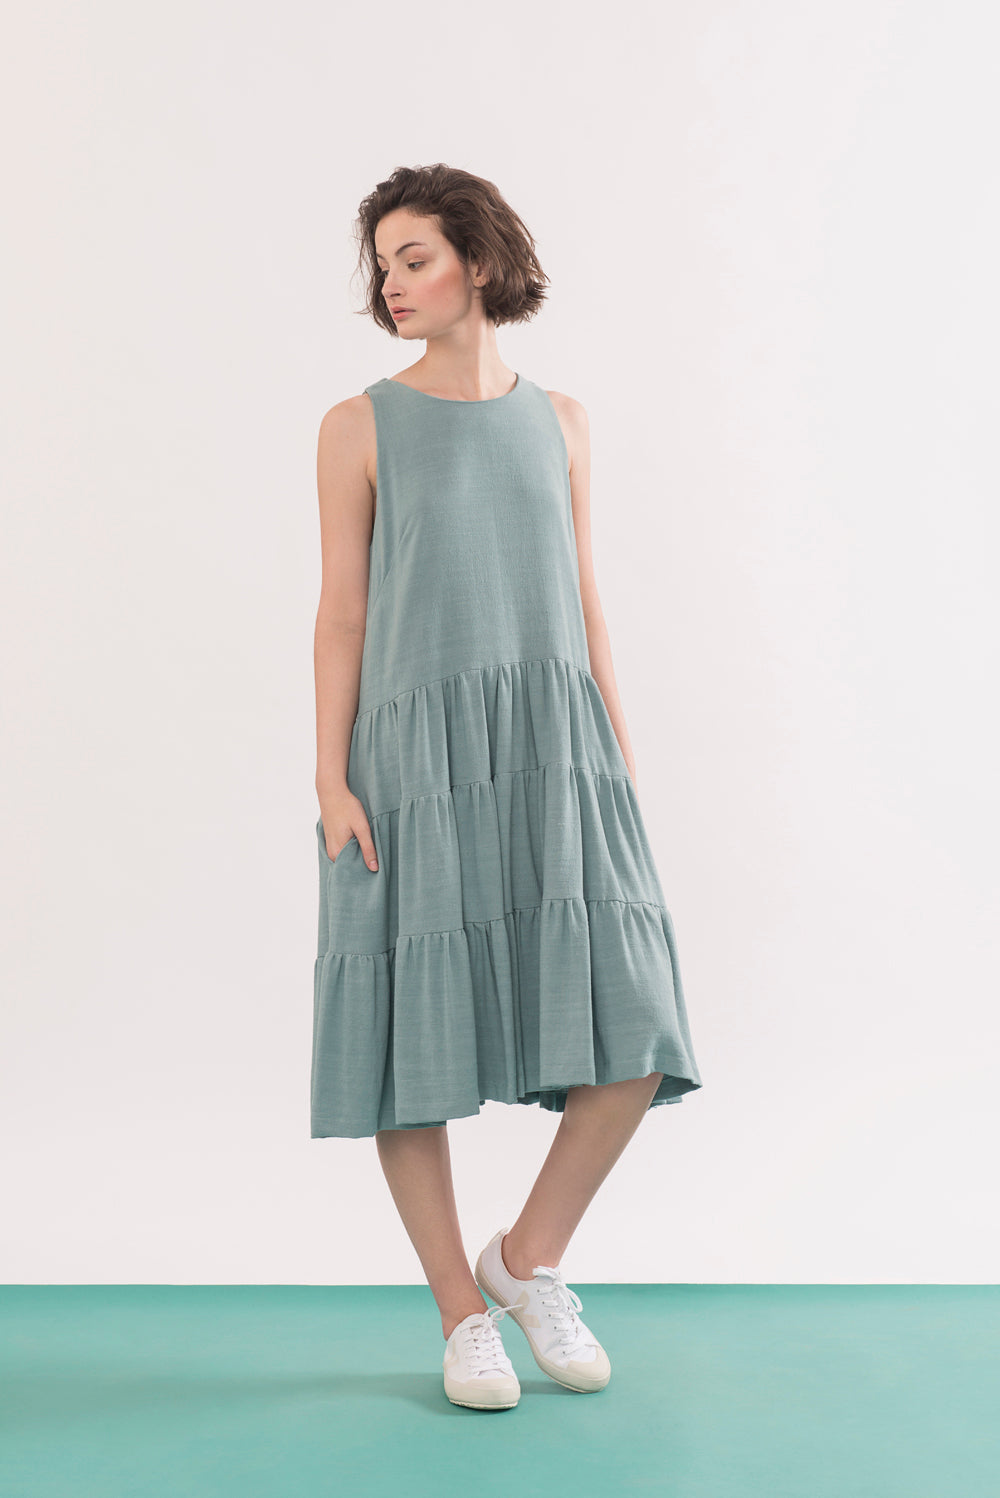 Chagall Dress by Jennifer Glasgow, Seafoam, sleeveless, three-tiered, pockets, rayon and linen, sizes XS to XL, made in Montreal